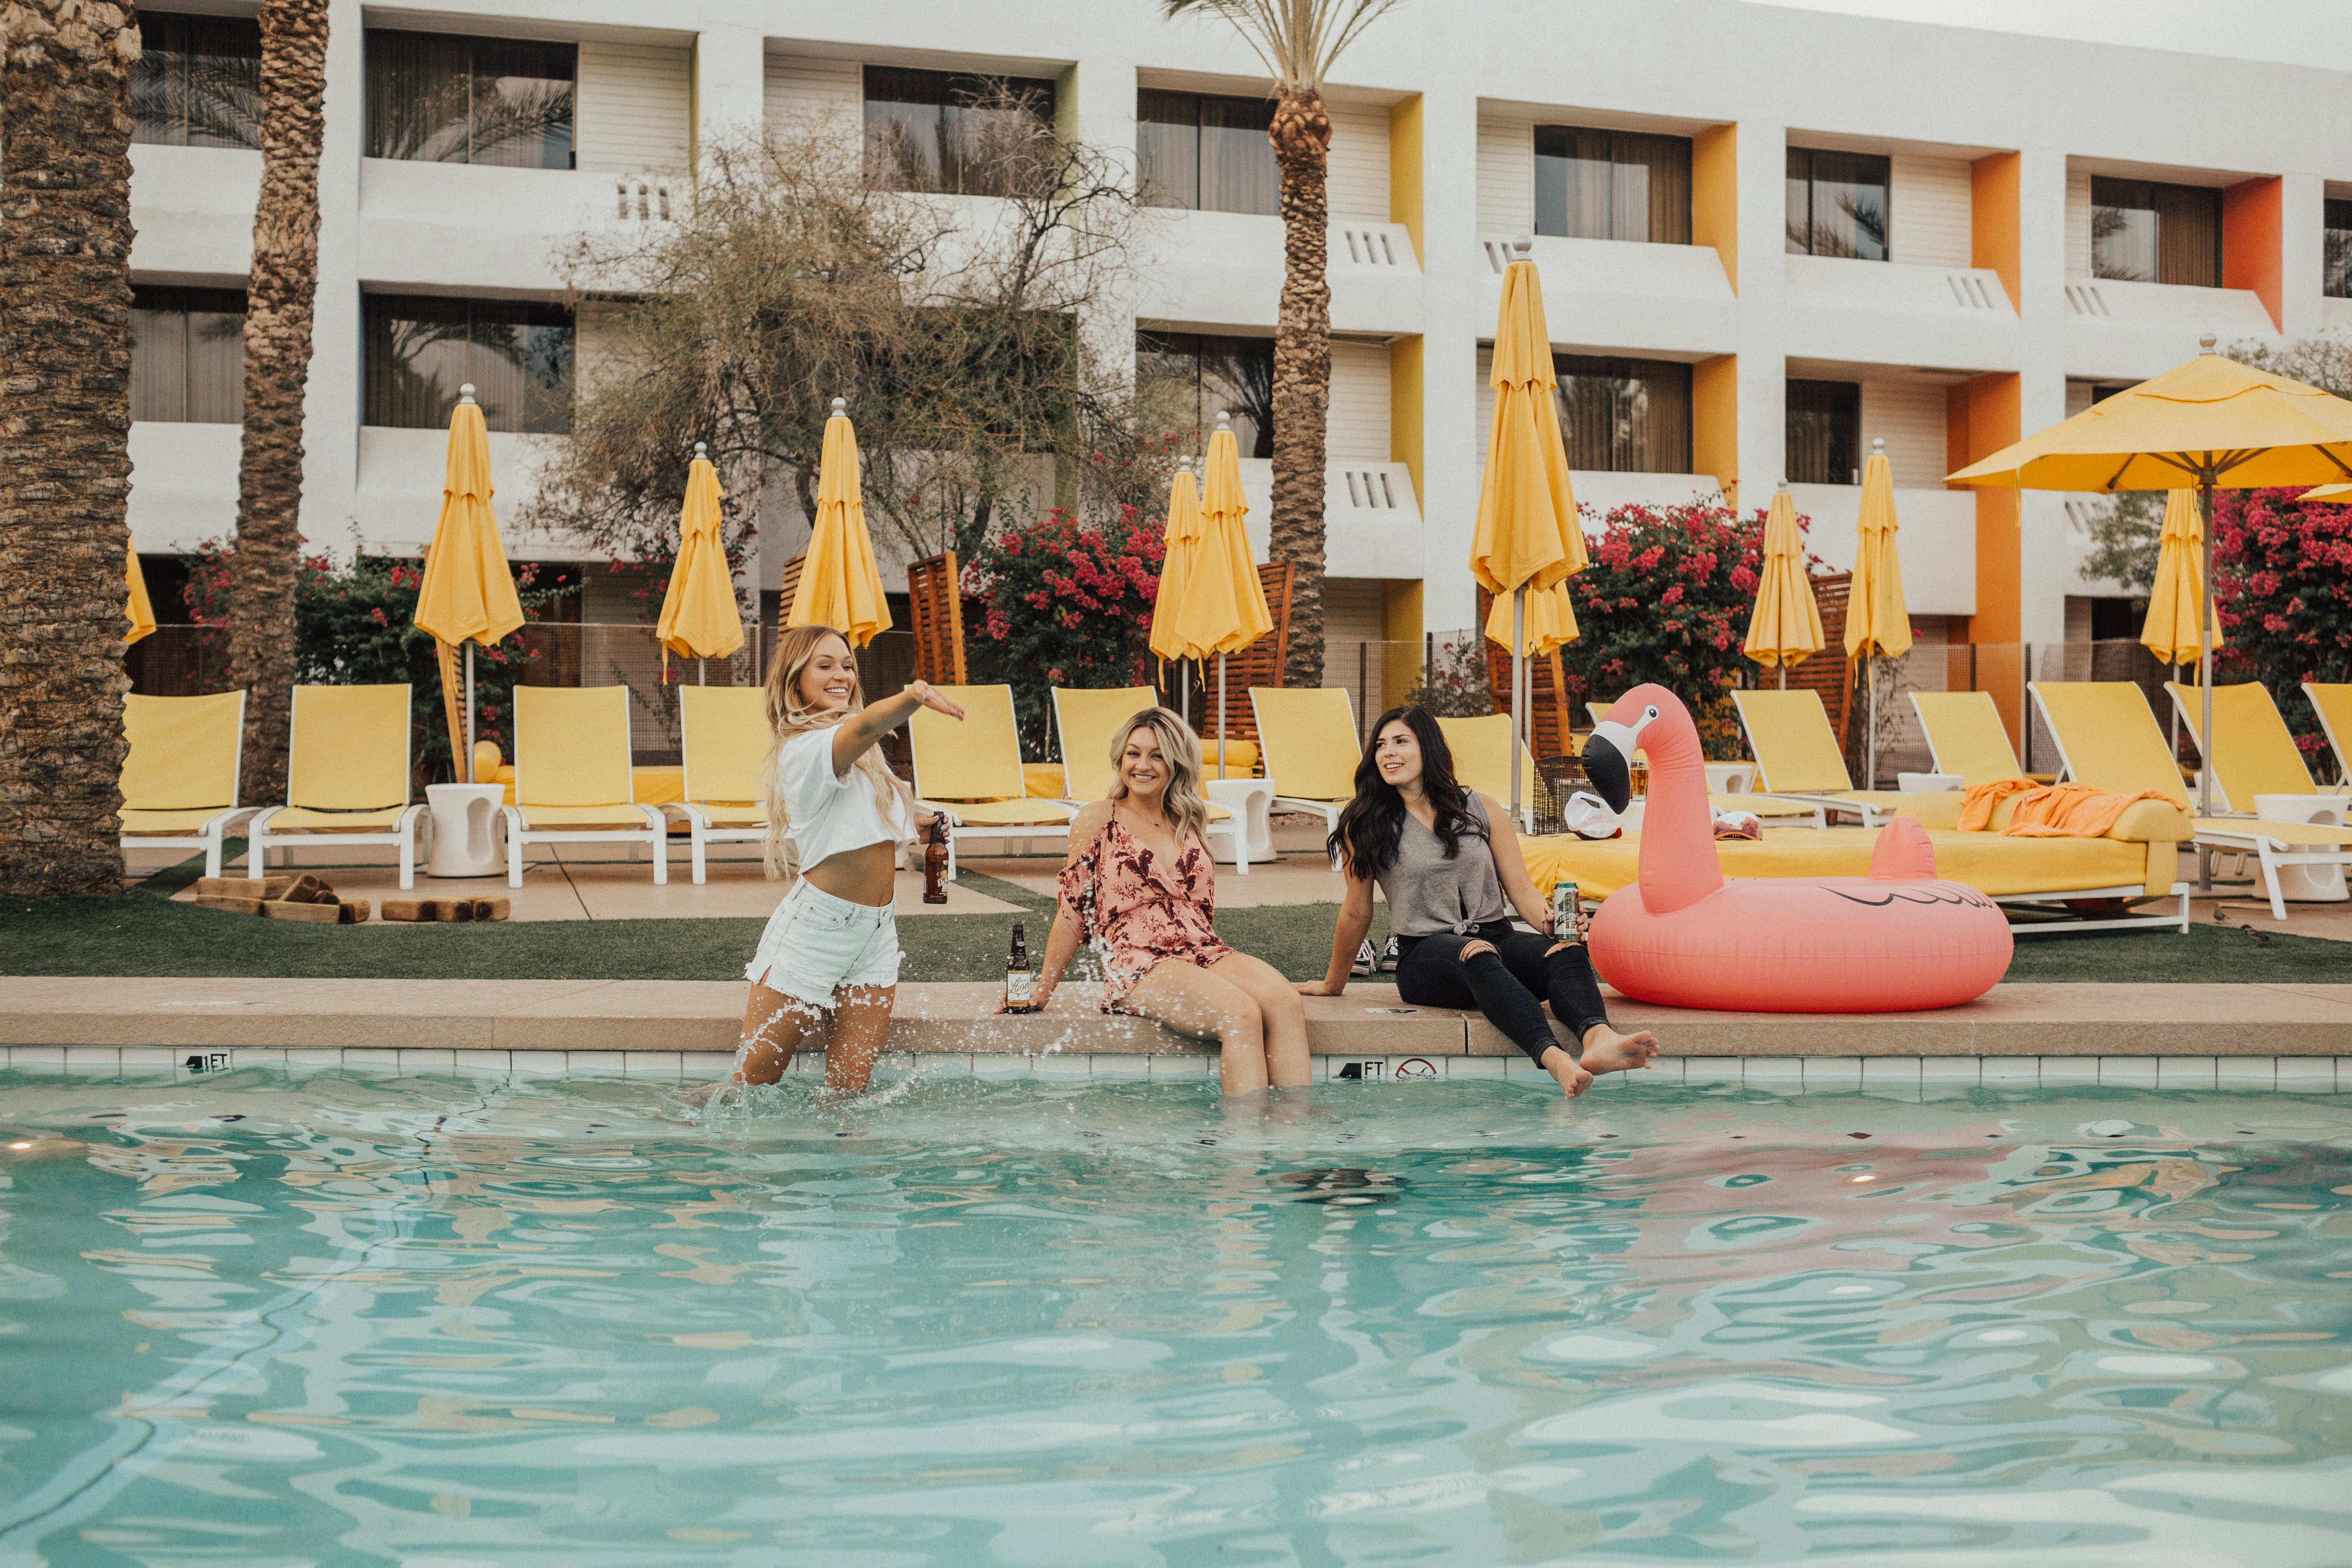 three women sitting beside flamingo floater near swimming pool during daytime